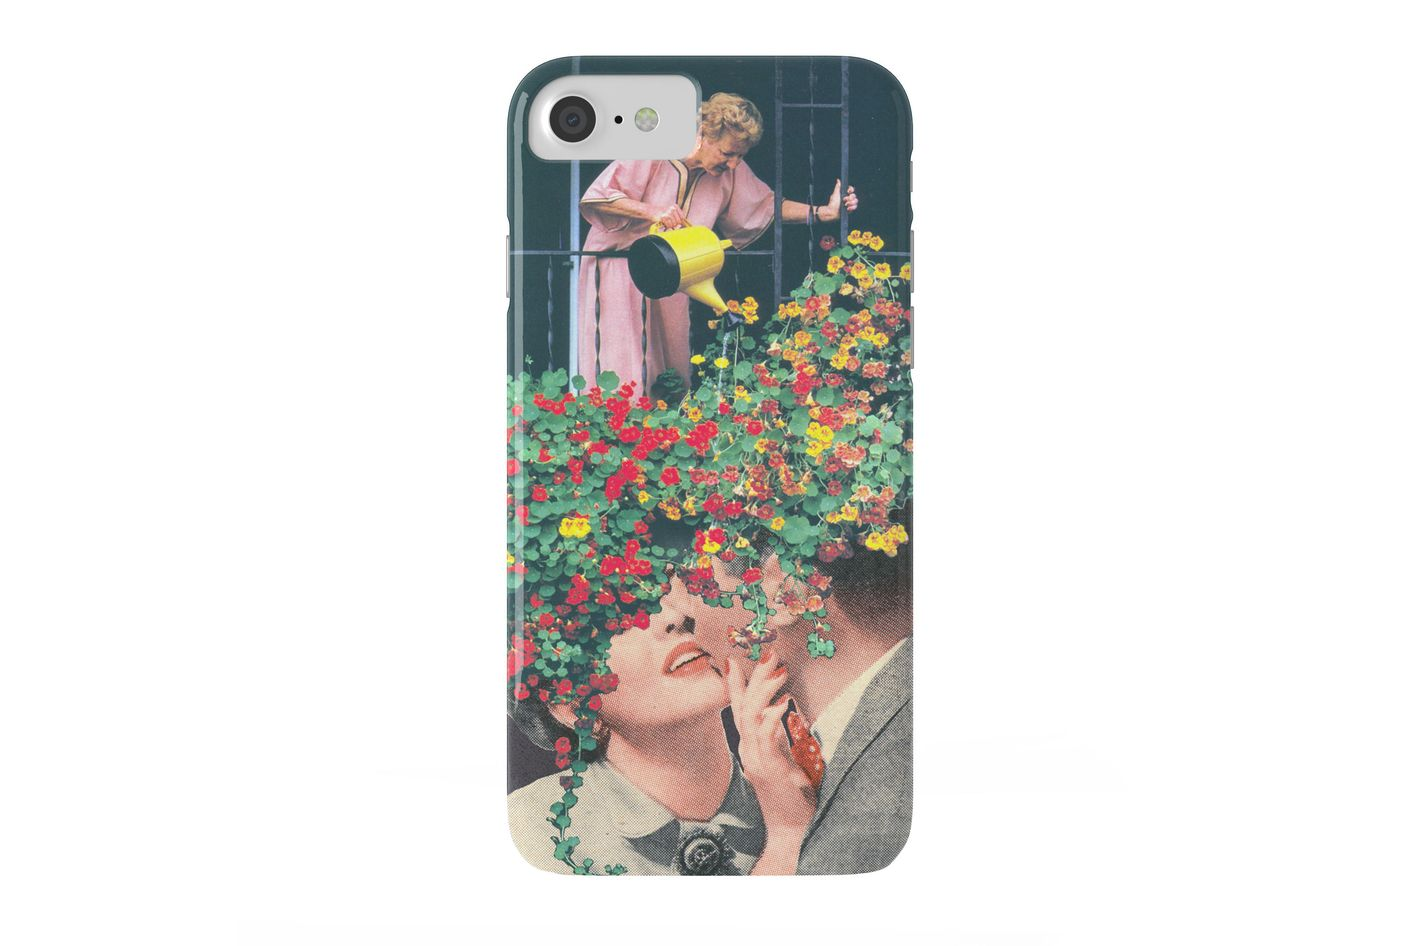 the best iphone phone cases reviewedthe best phone case for the fashionable society6 phone cases